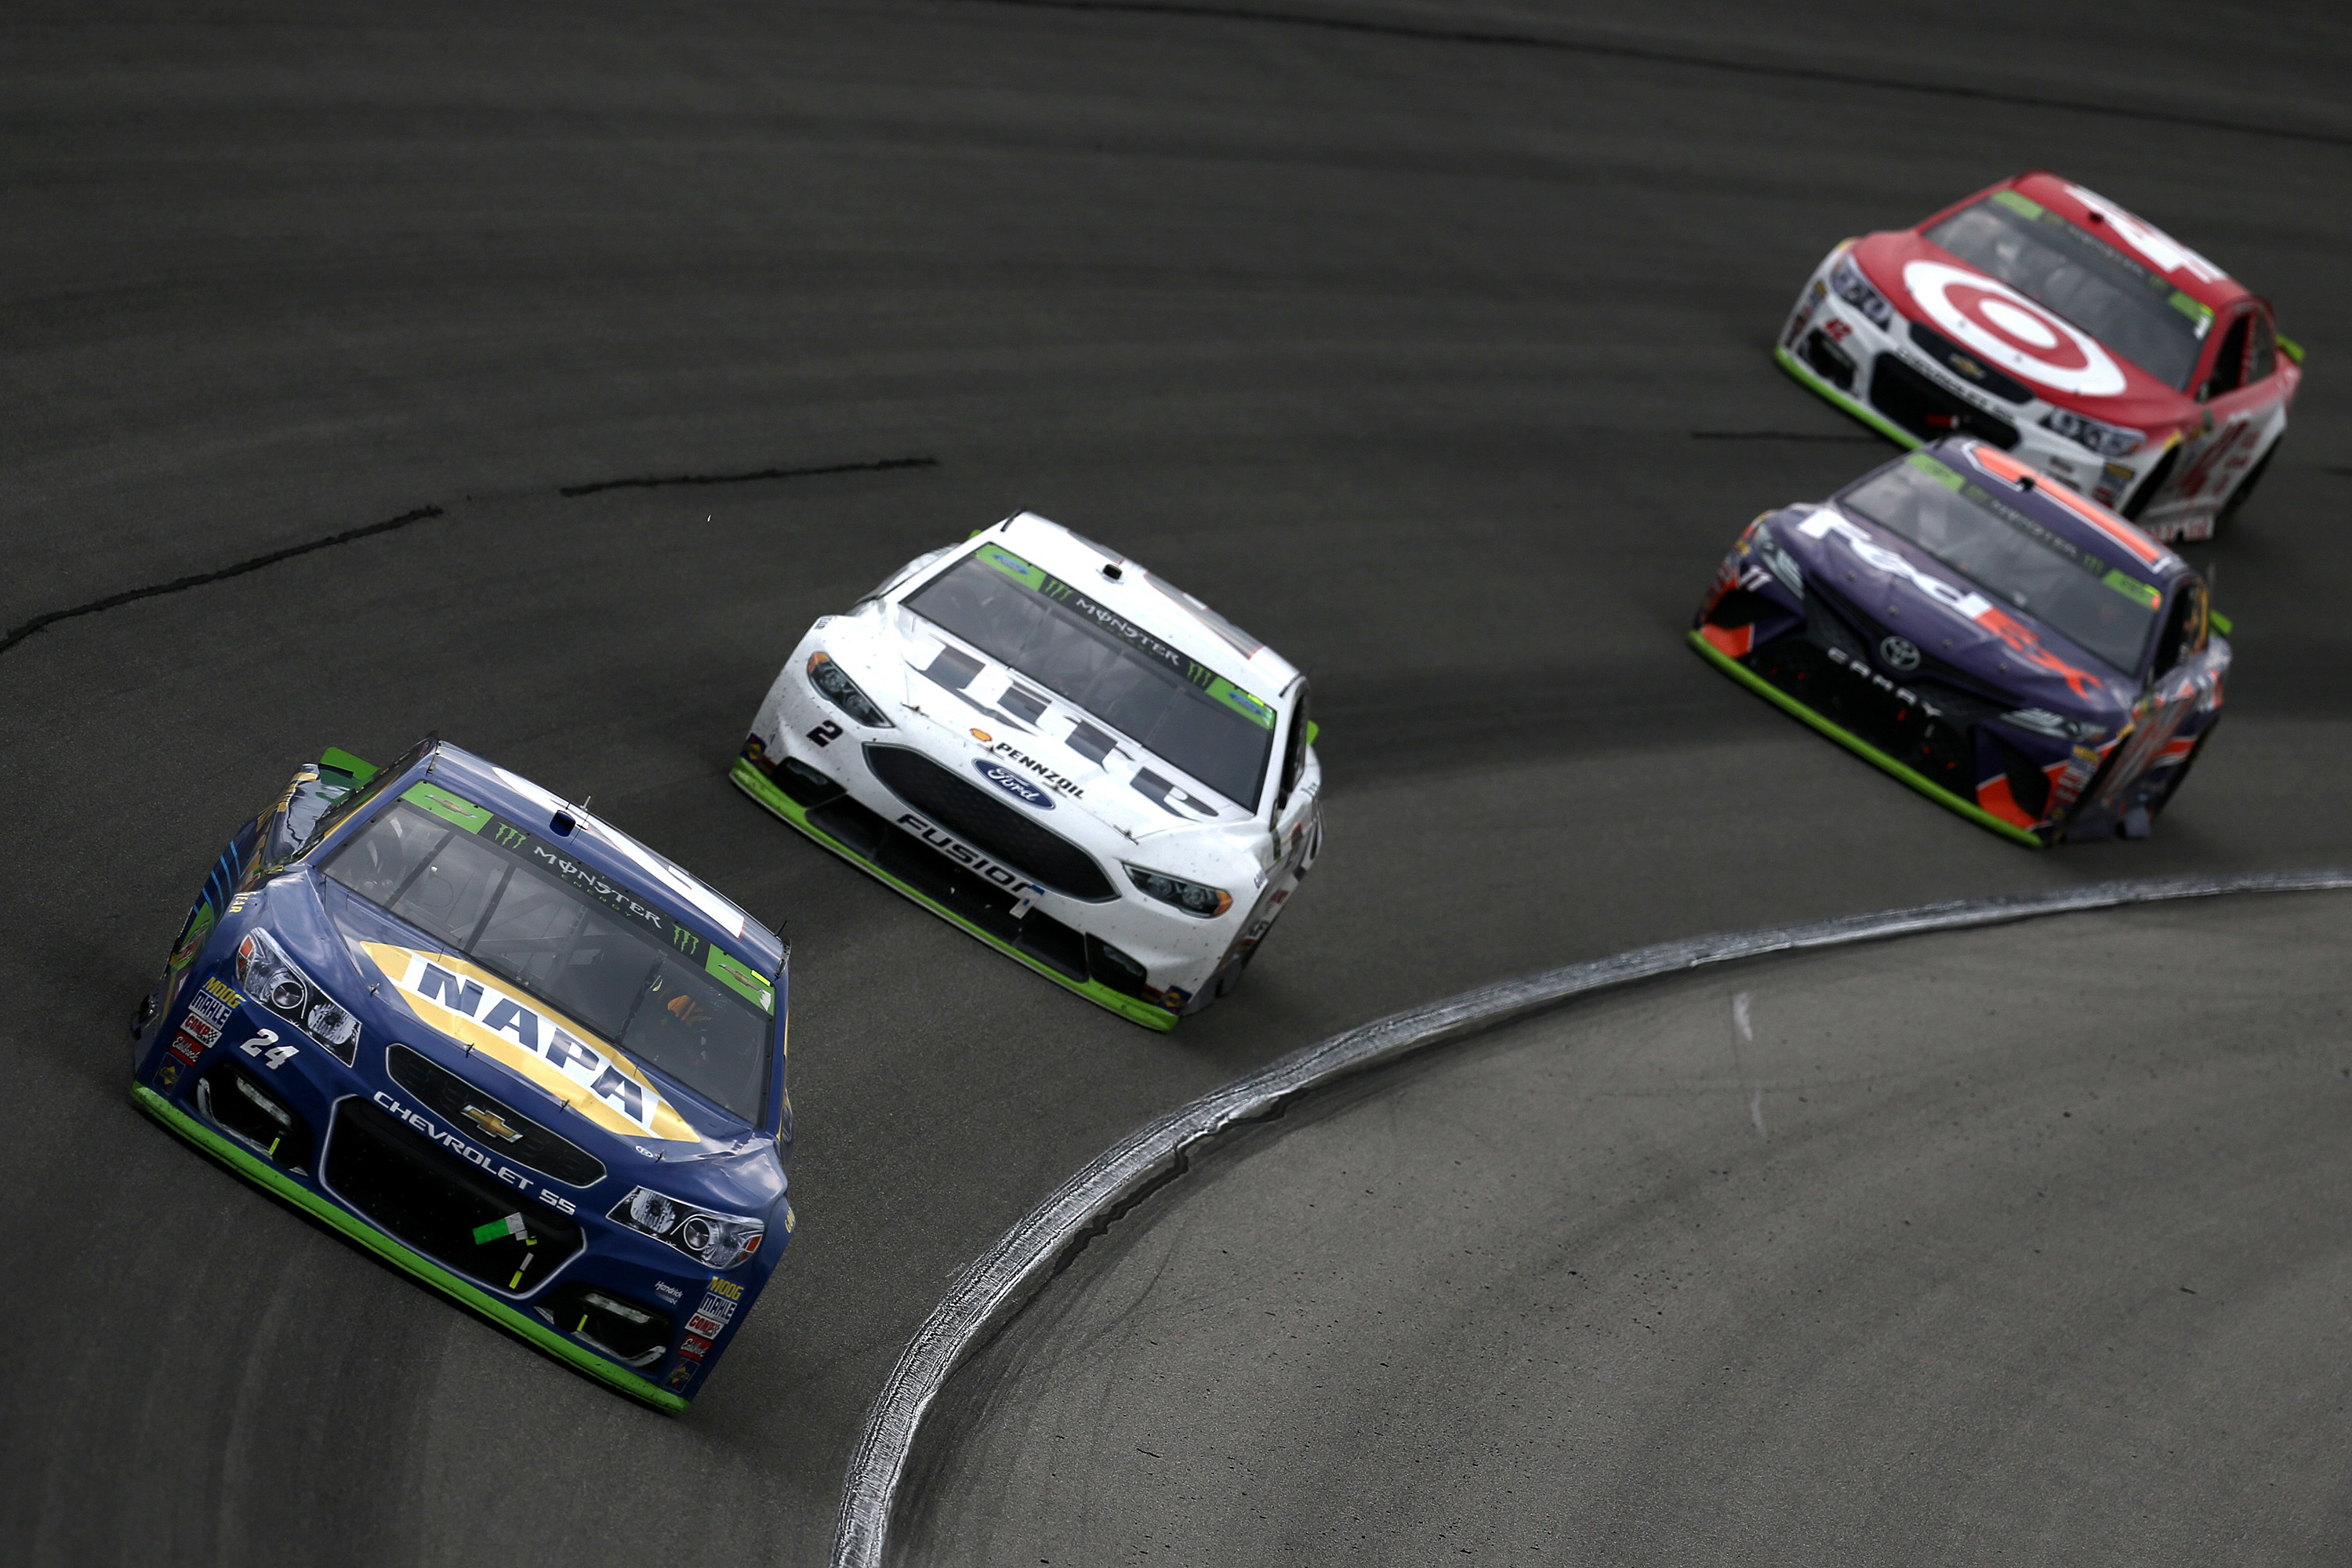 2017 NASCAR Chicagoland Speedway penalties announced